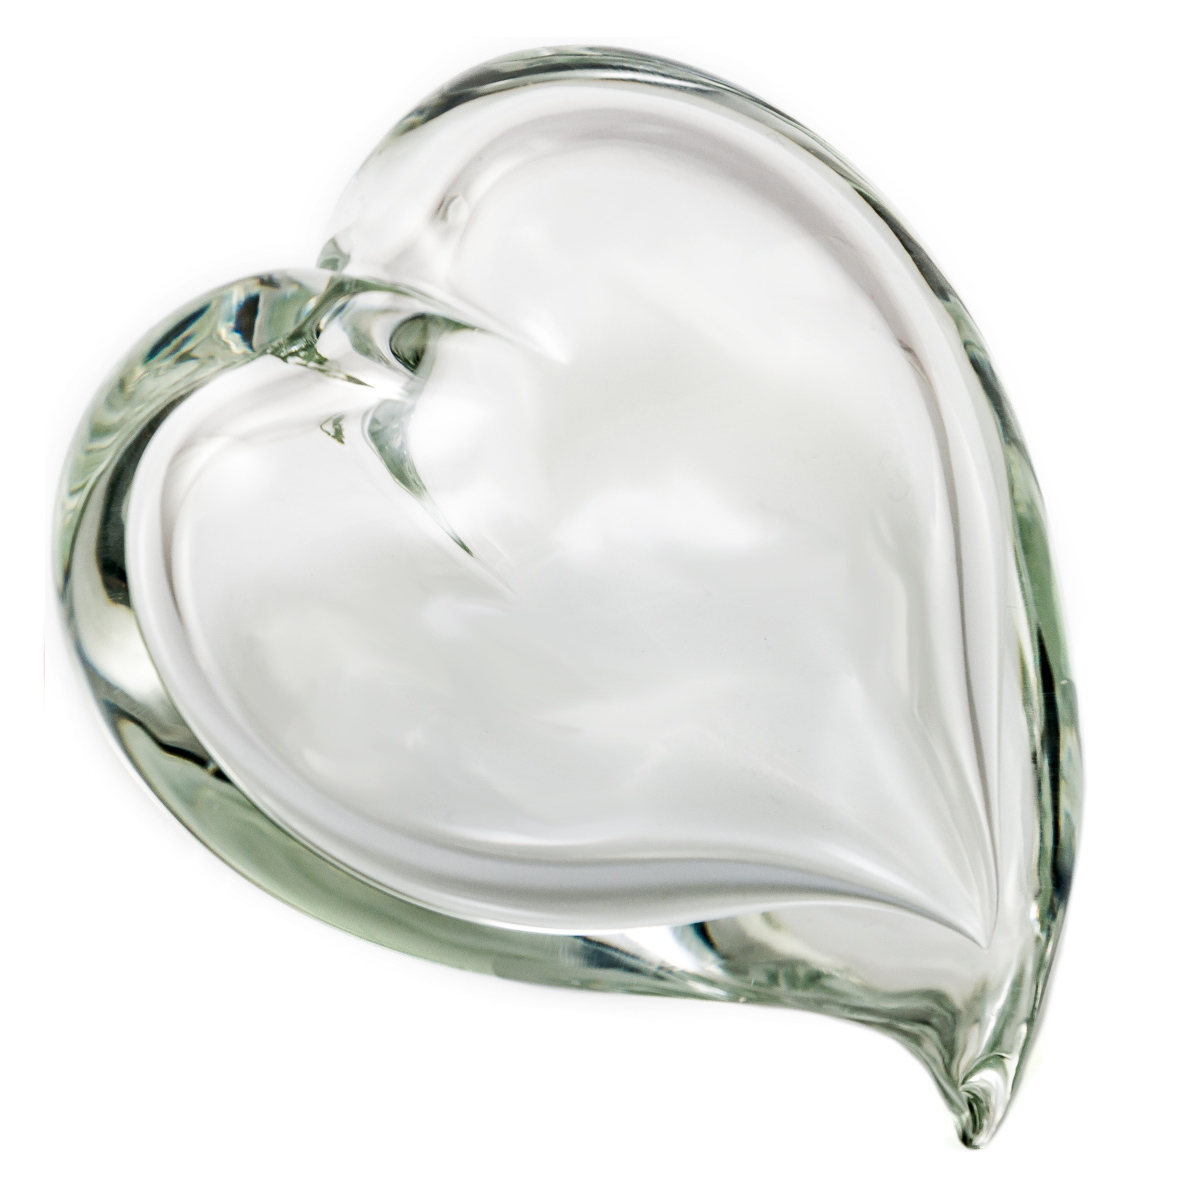 cuore-amore-crystal-passion-glass-heart